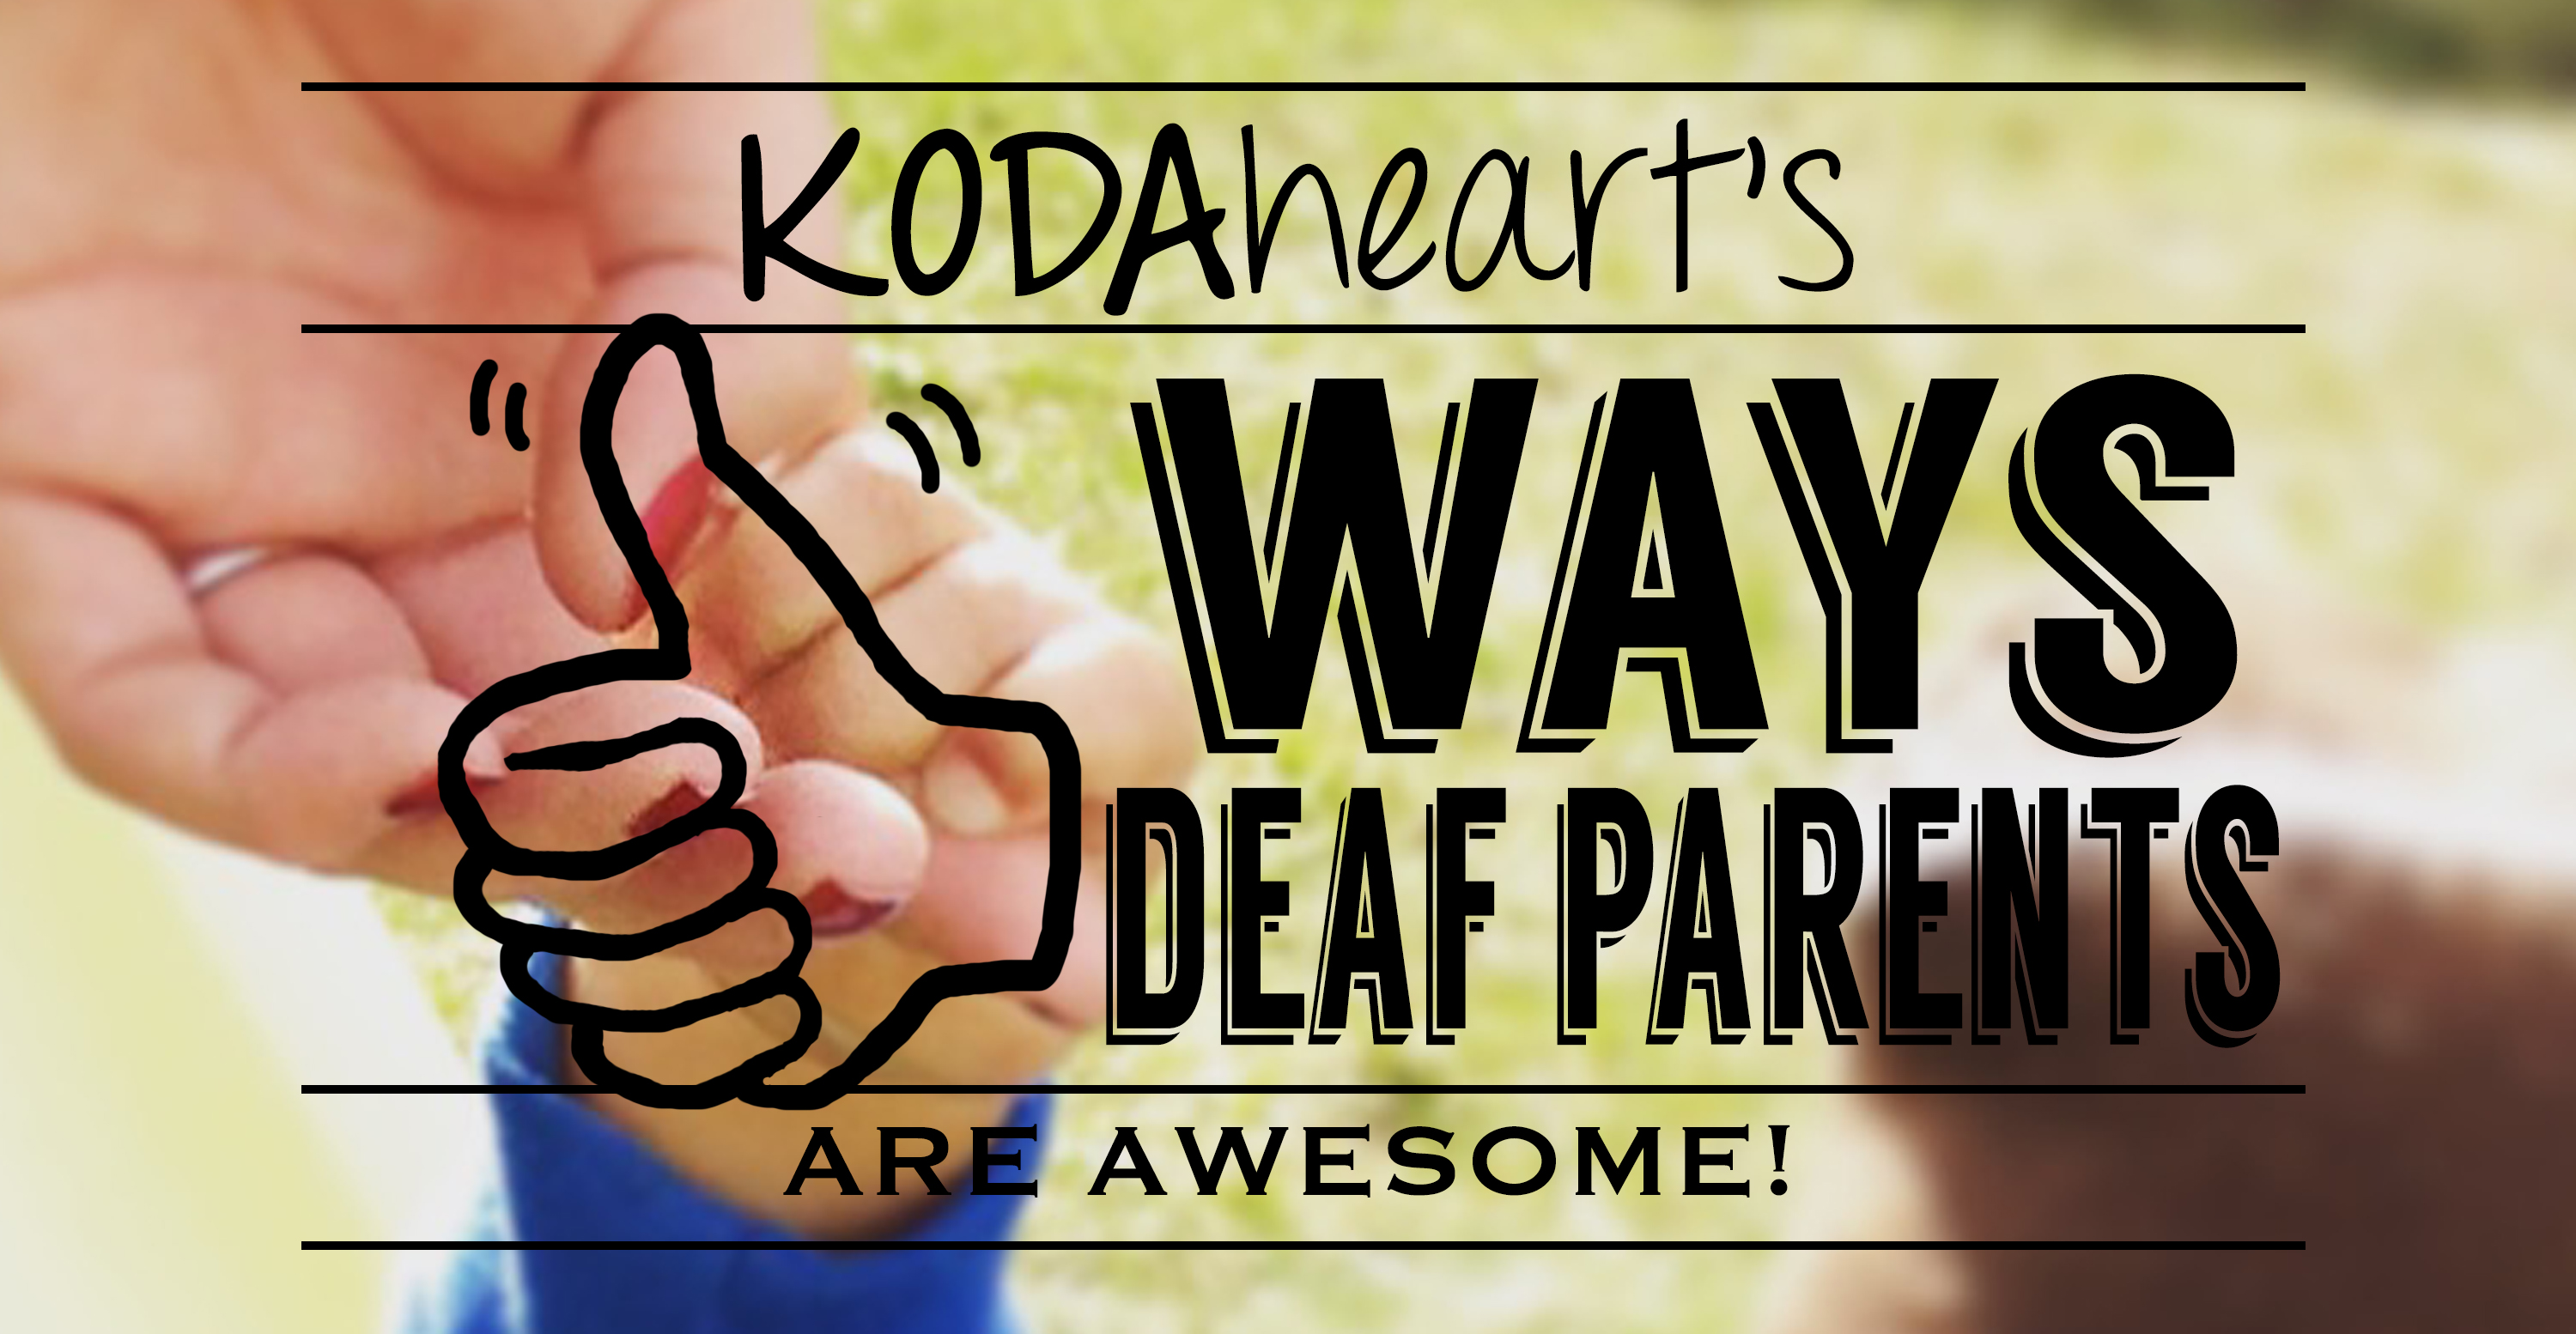 """[Image Description: A thumb, outlined in black, signs """"10"""" with accompanying text that reads: """"KODAheart's [10] Ways Deaf Parents Are Awesome!"""" In the background, a child's hand reaches up to grasp an adult hand with red nail polish.]"""